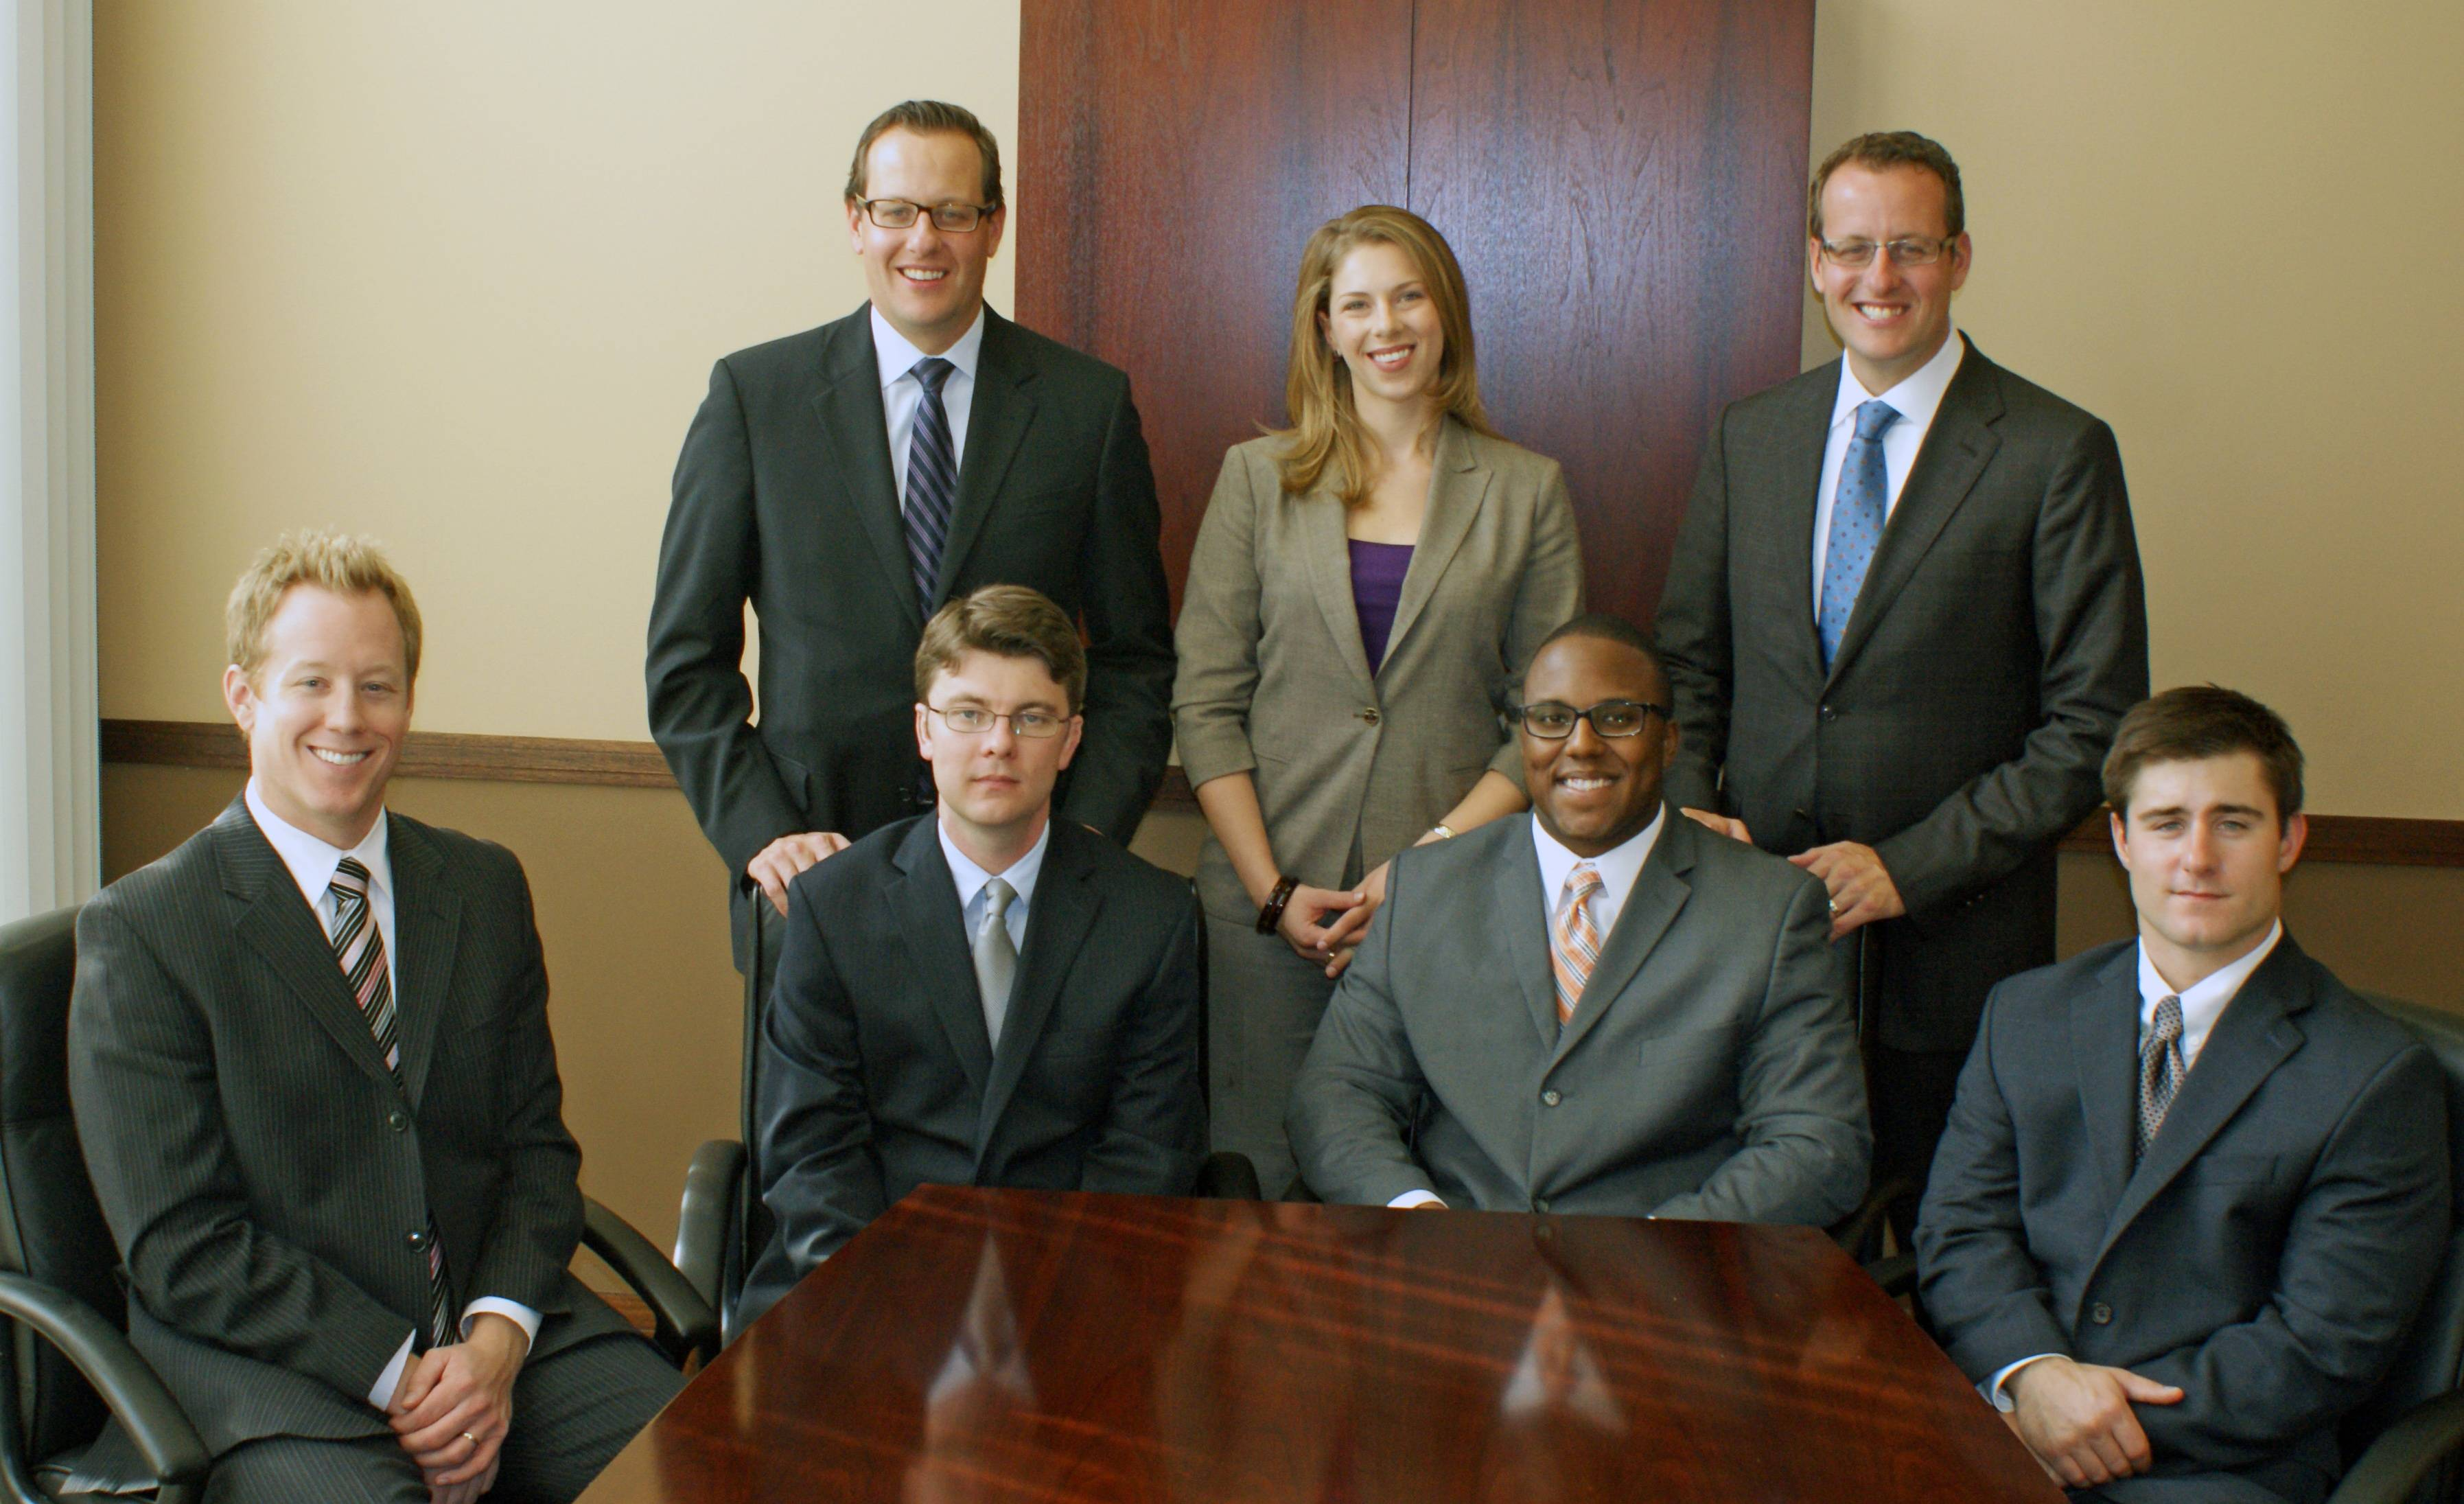 The Northwestern Mutual District Office in Oak Brook aims to add 14 financial representatives in 2013. Newly contracted financial representatives in the front row, from left to right:  Ron Huisman, Andrew Wilson, Nick Purchase & Patrick Brooke.  Back row:  The recruiting team of Chad McQuade, field director; Pauline Ozols, director of recruitment & selection; and Chad McQuade, managing director are actively recruiting for 2013.